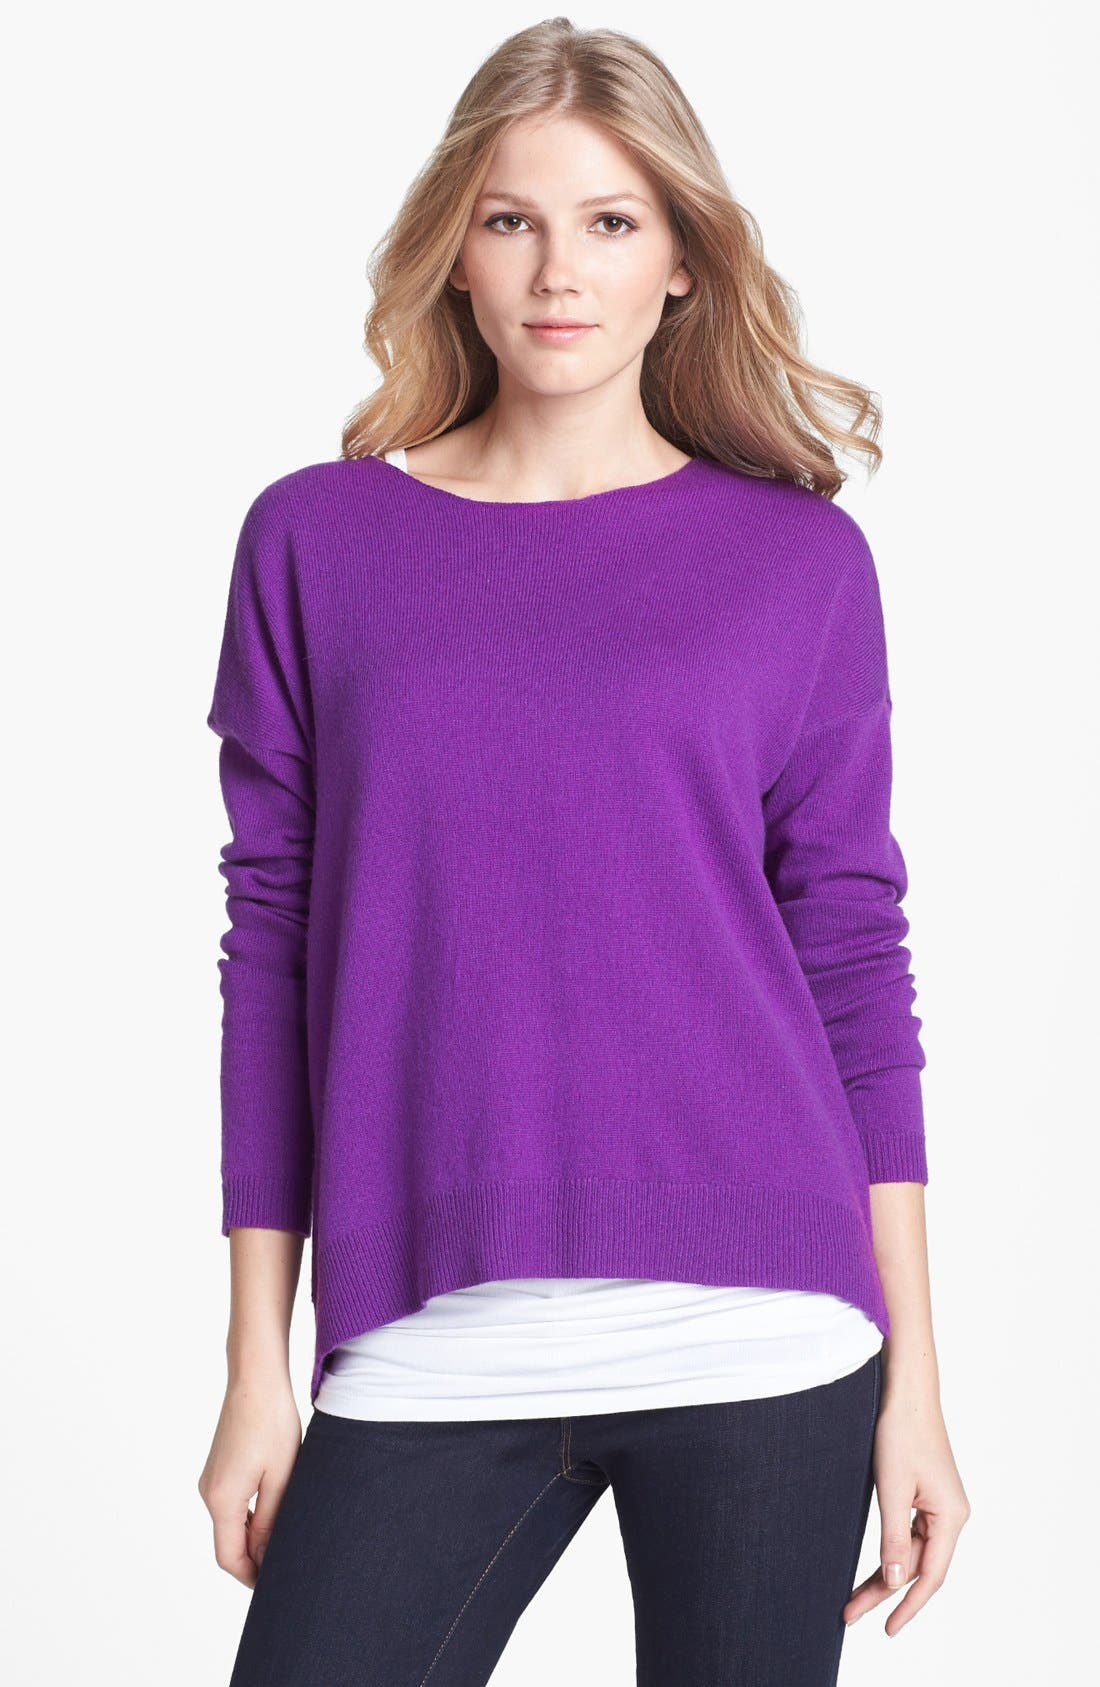 Alternate Image 1 Selected - Halogen® Wool & Cashmere Back Zip Sweater (Petite)